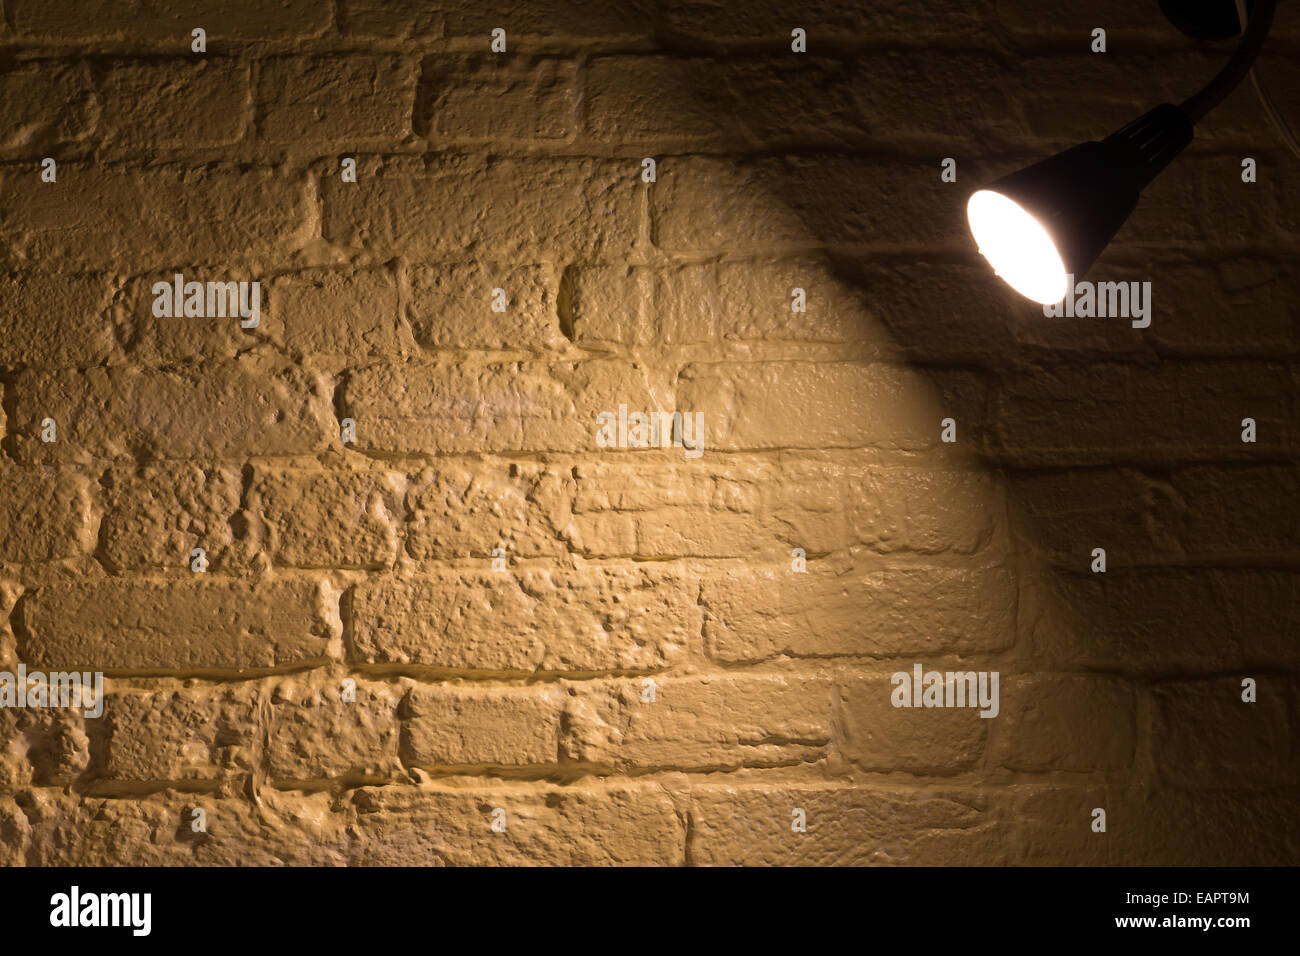 A Spot Light Shining On A Wall With Copy Space   Stock Image